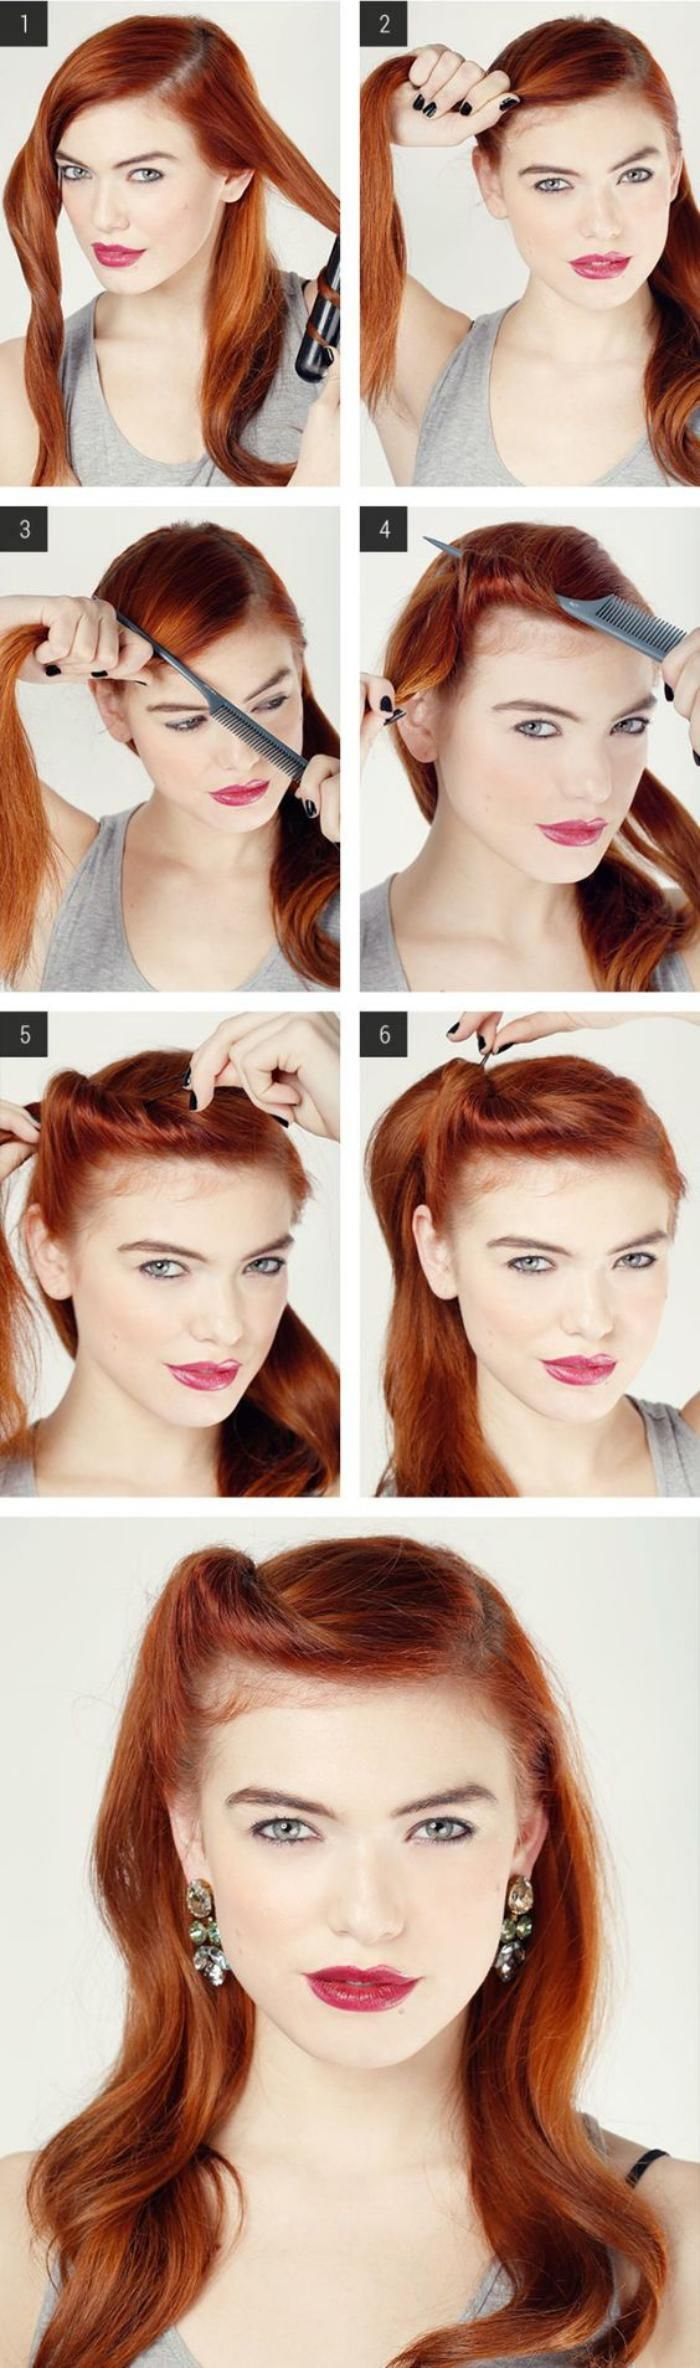 coiffure pin up, faire une coiffure vintage